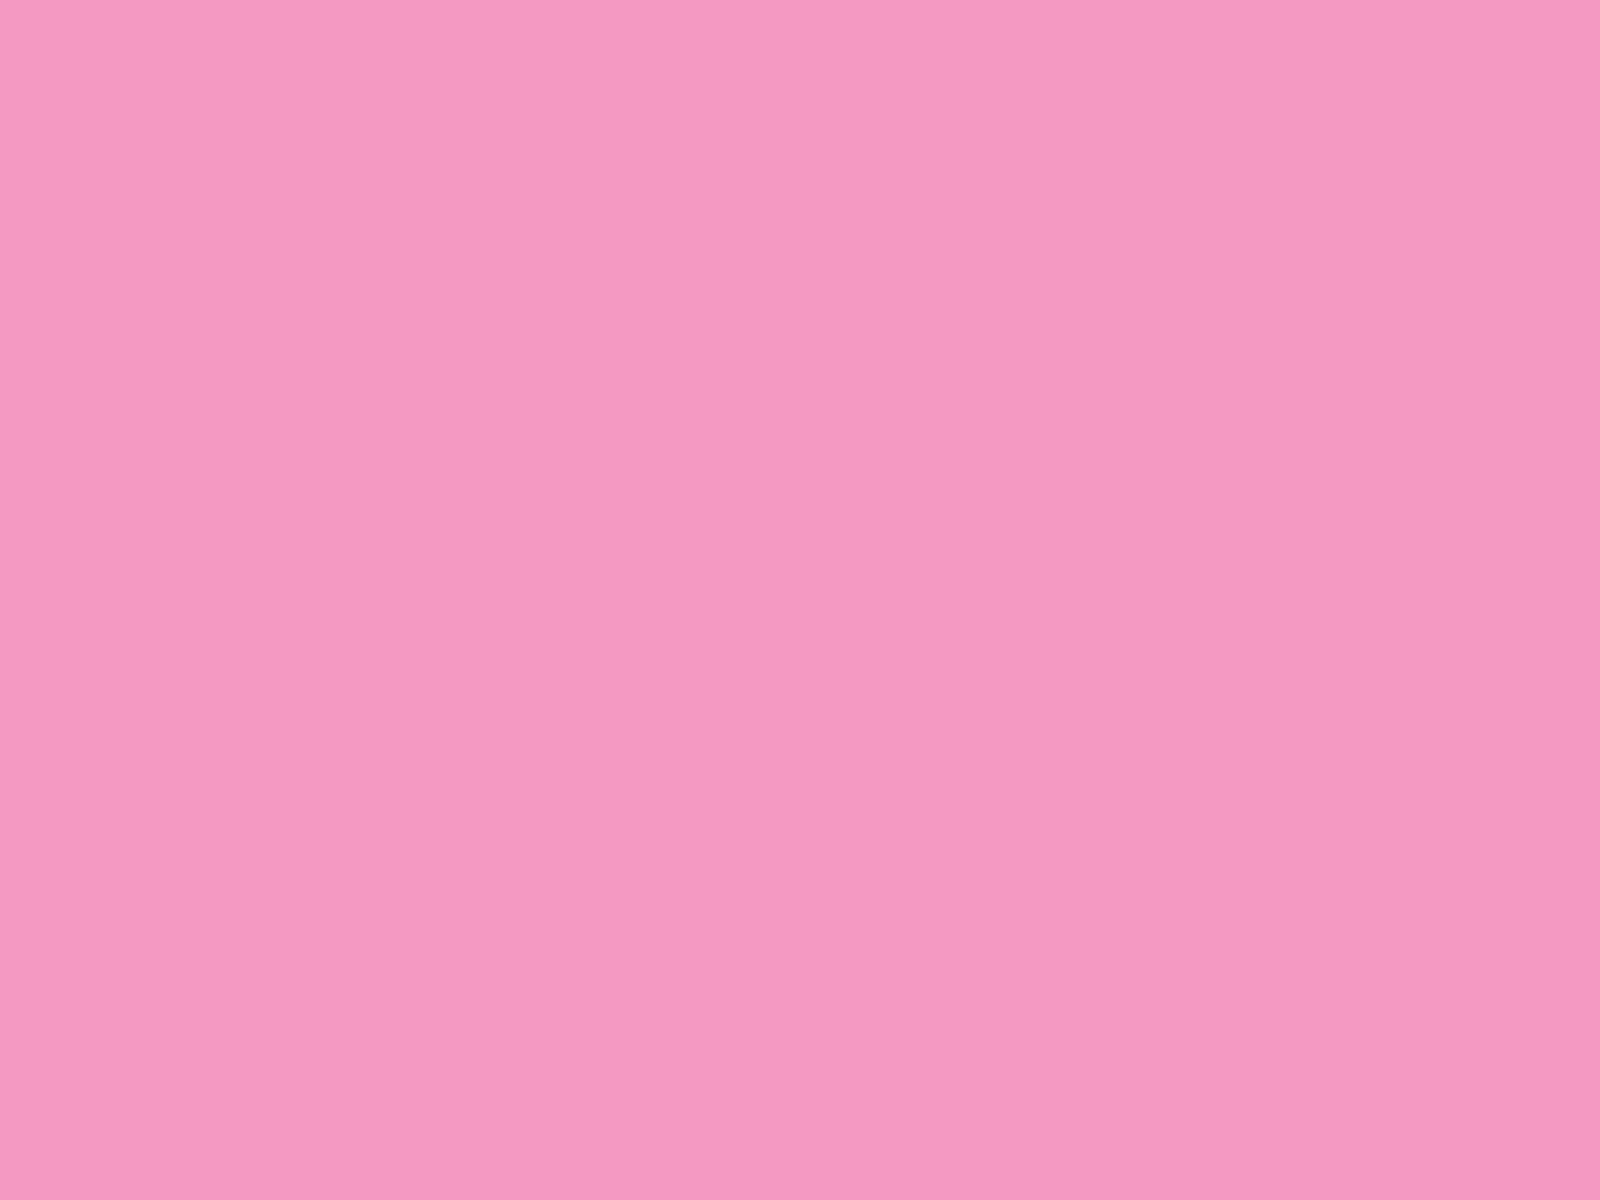 1600x1200 Pastel Magenta Solid Color Background